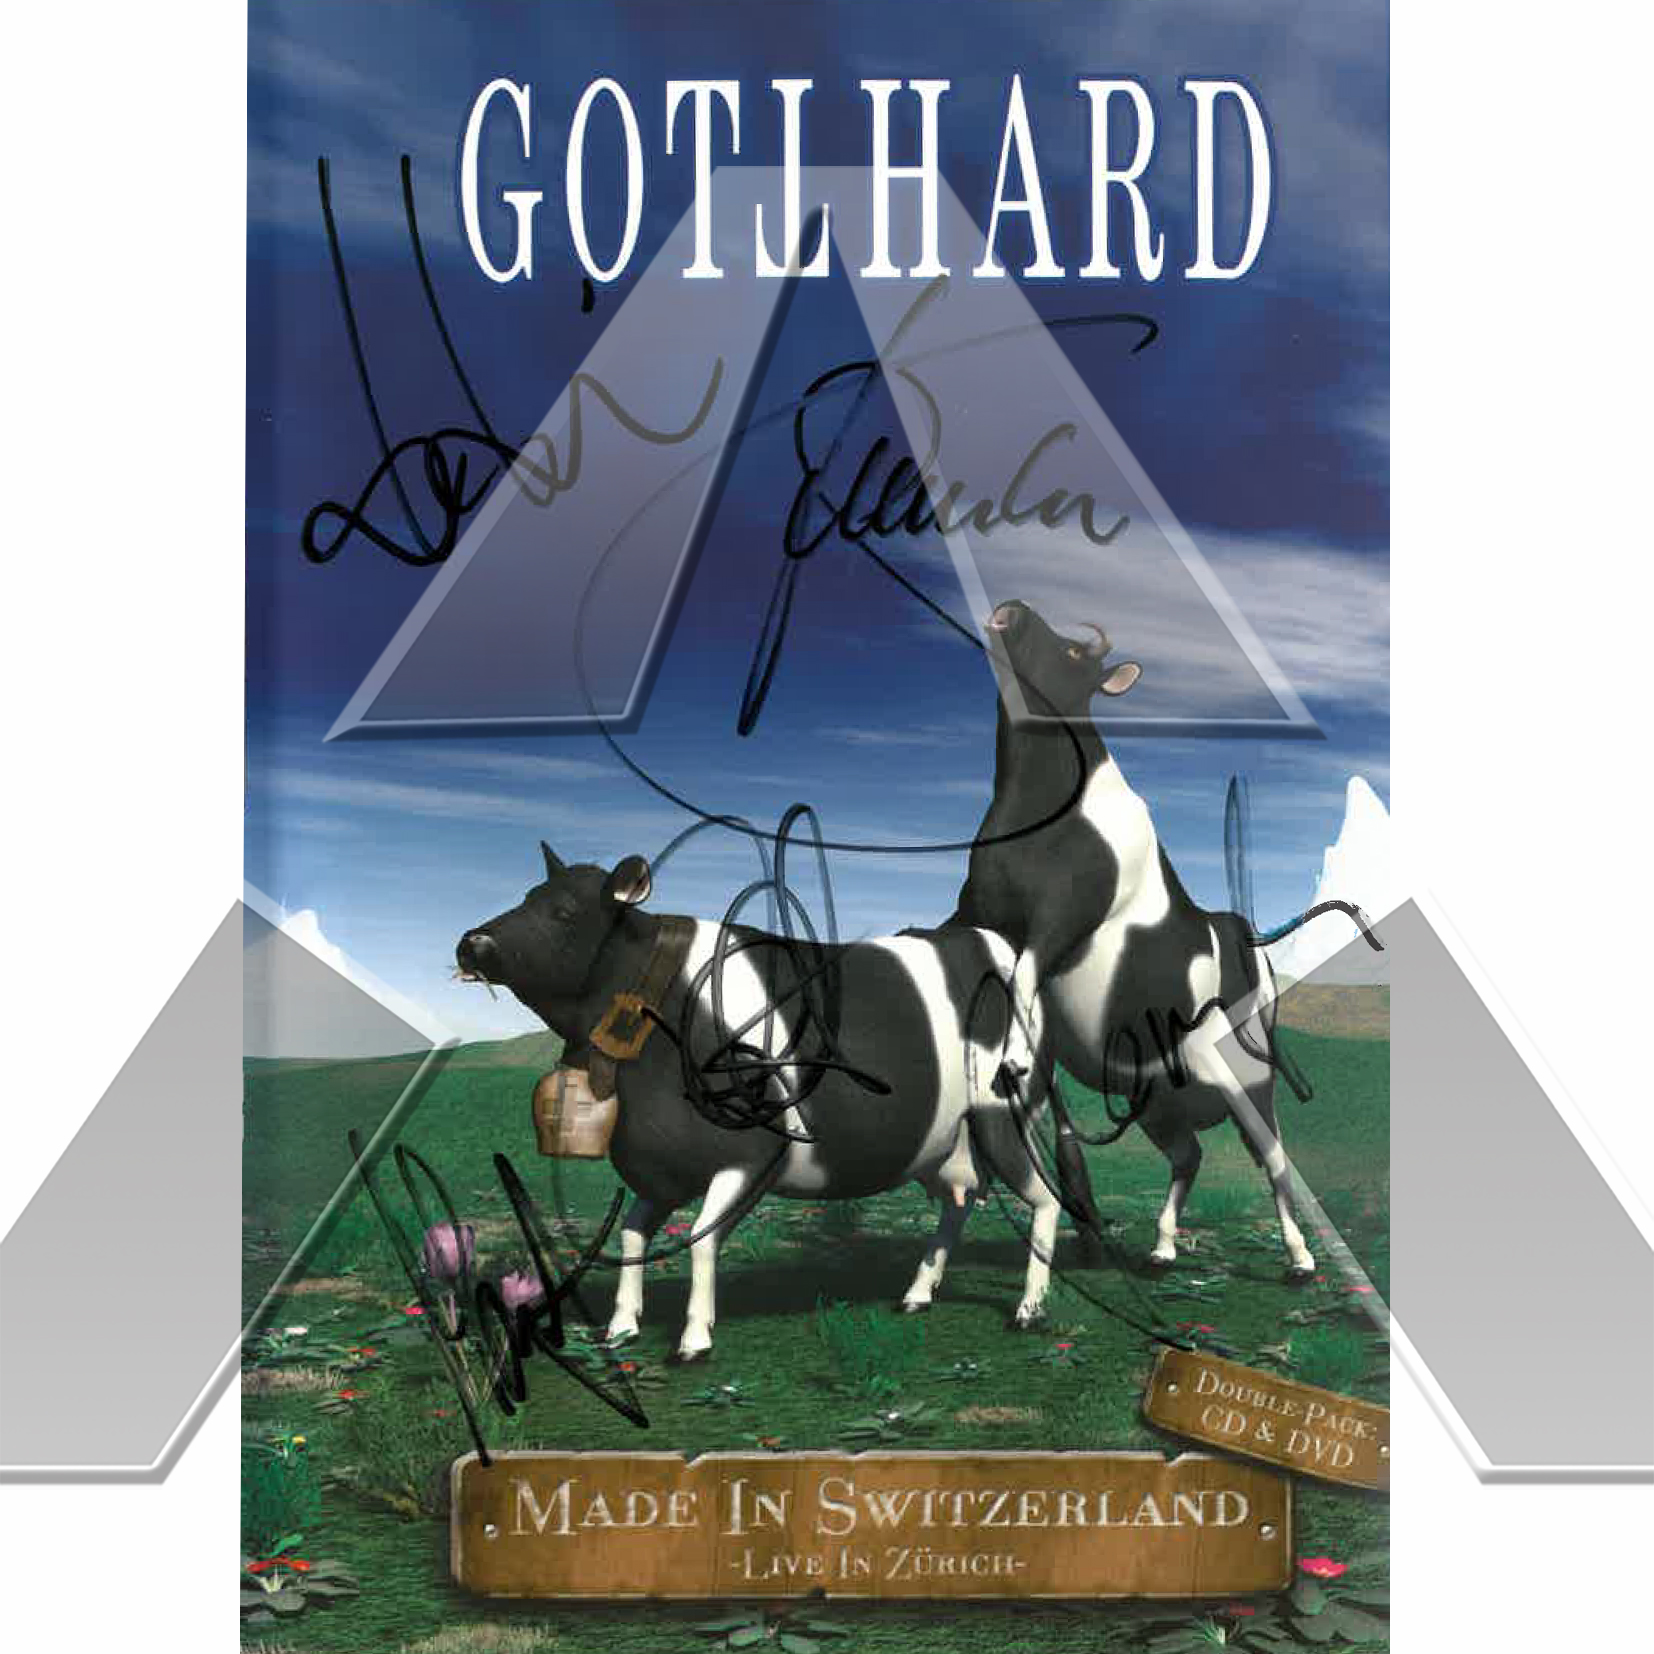 Gotthard ★ Made in Switzerland (cd album & dvd signed)